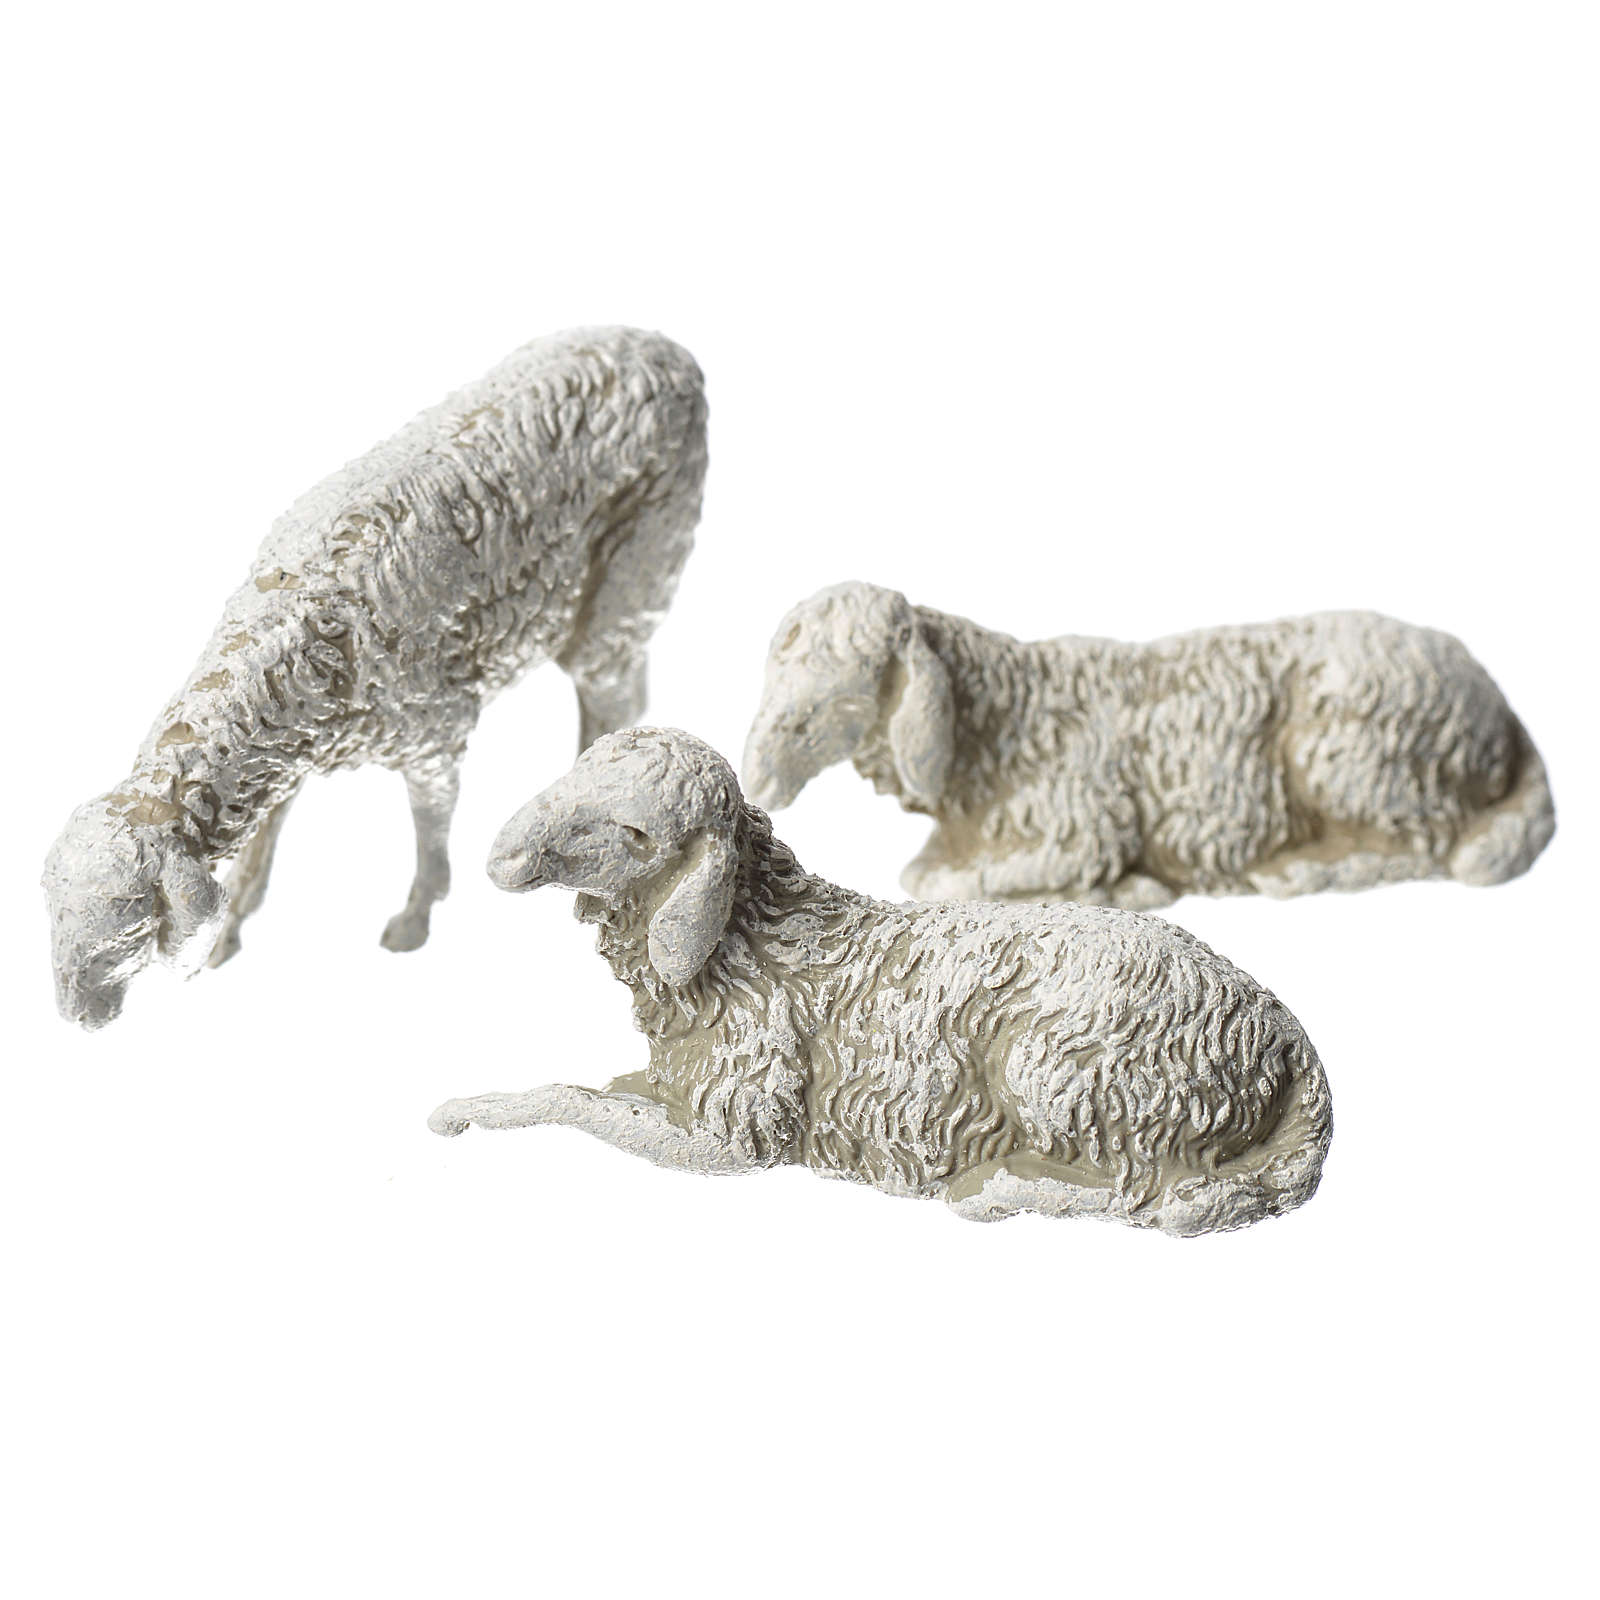 Nativity Scene Sheep by Moranduzzo 8cm, 6 pieces 4